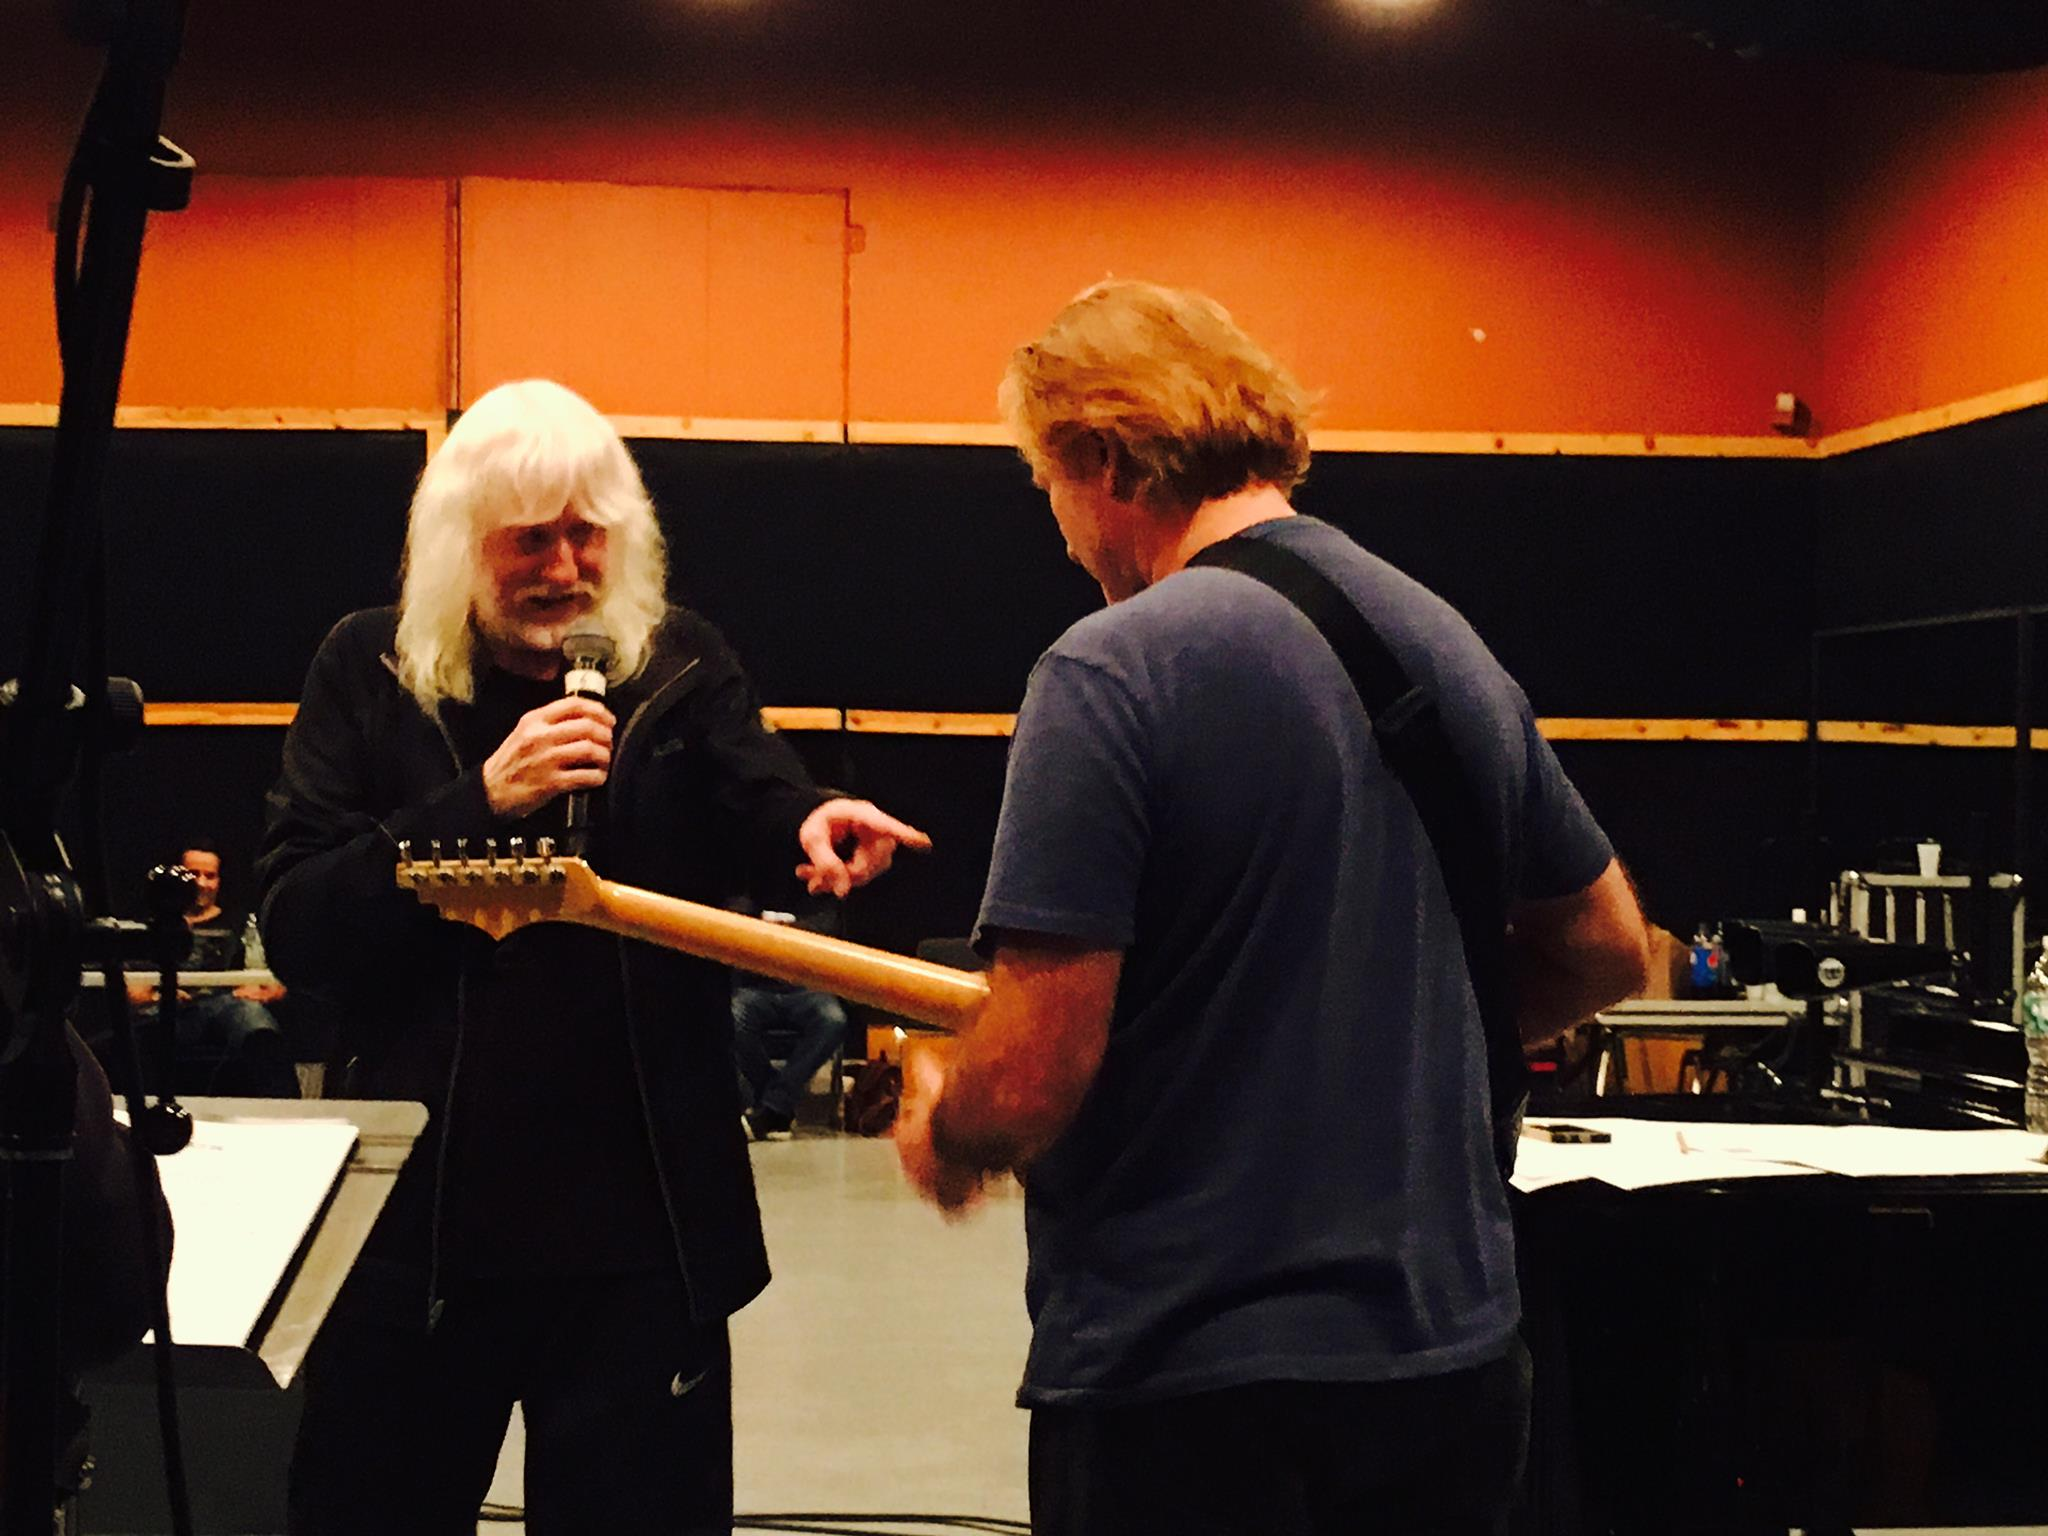 Edgar Winter and Peter Rehearsal.jpg